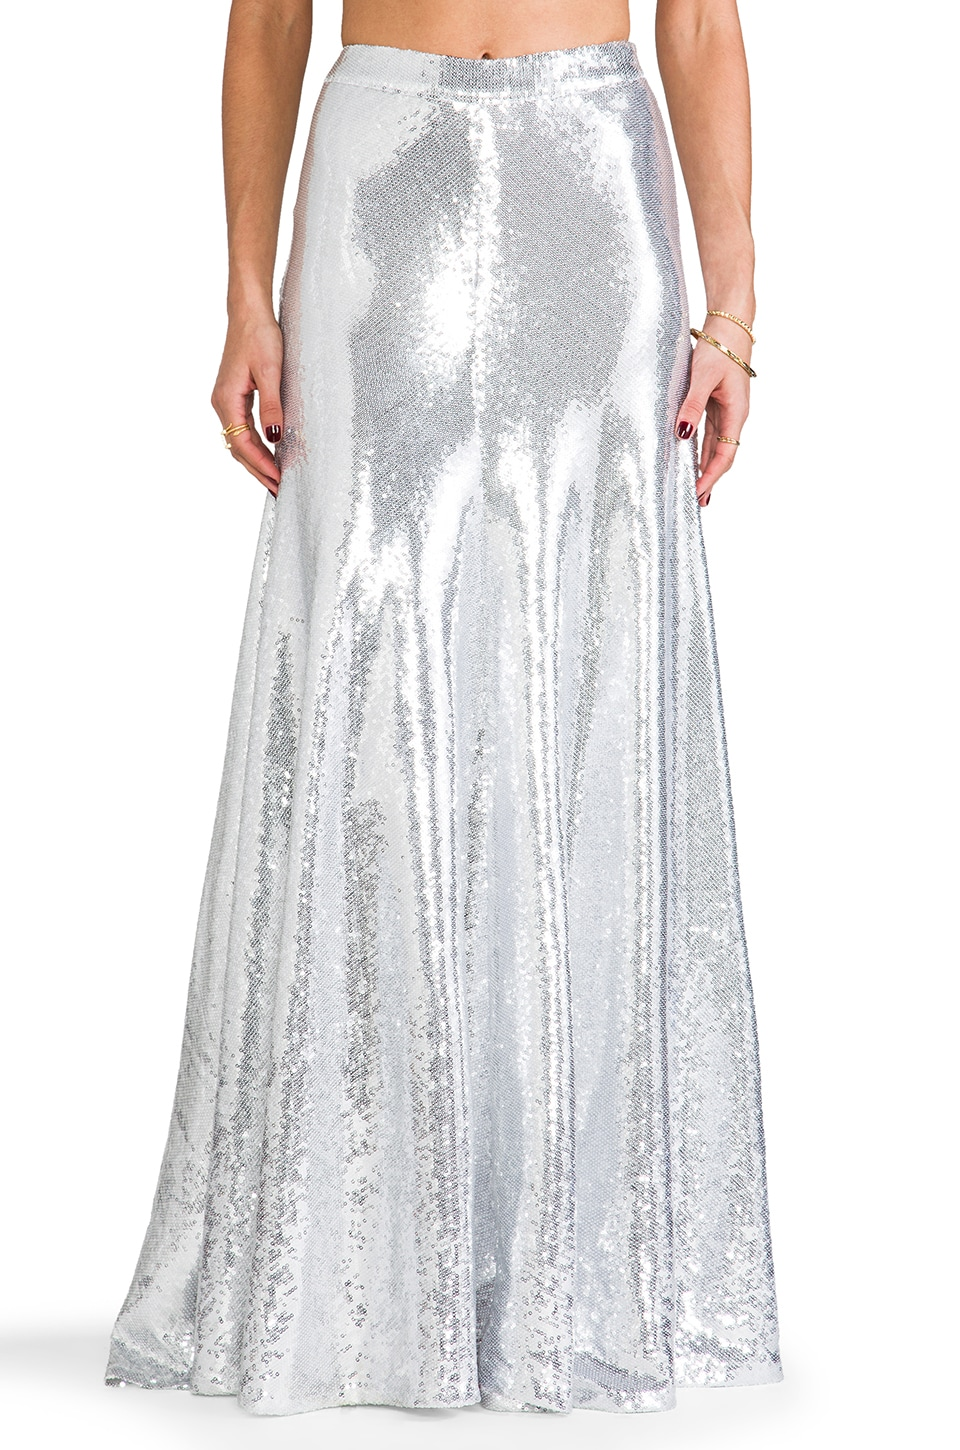 Wildfox Couture Cecilia Sequin Maxi Skirt in Silver